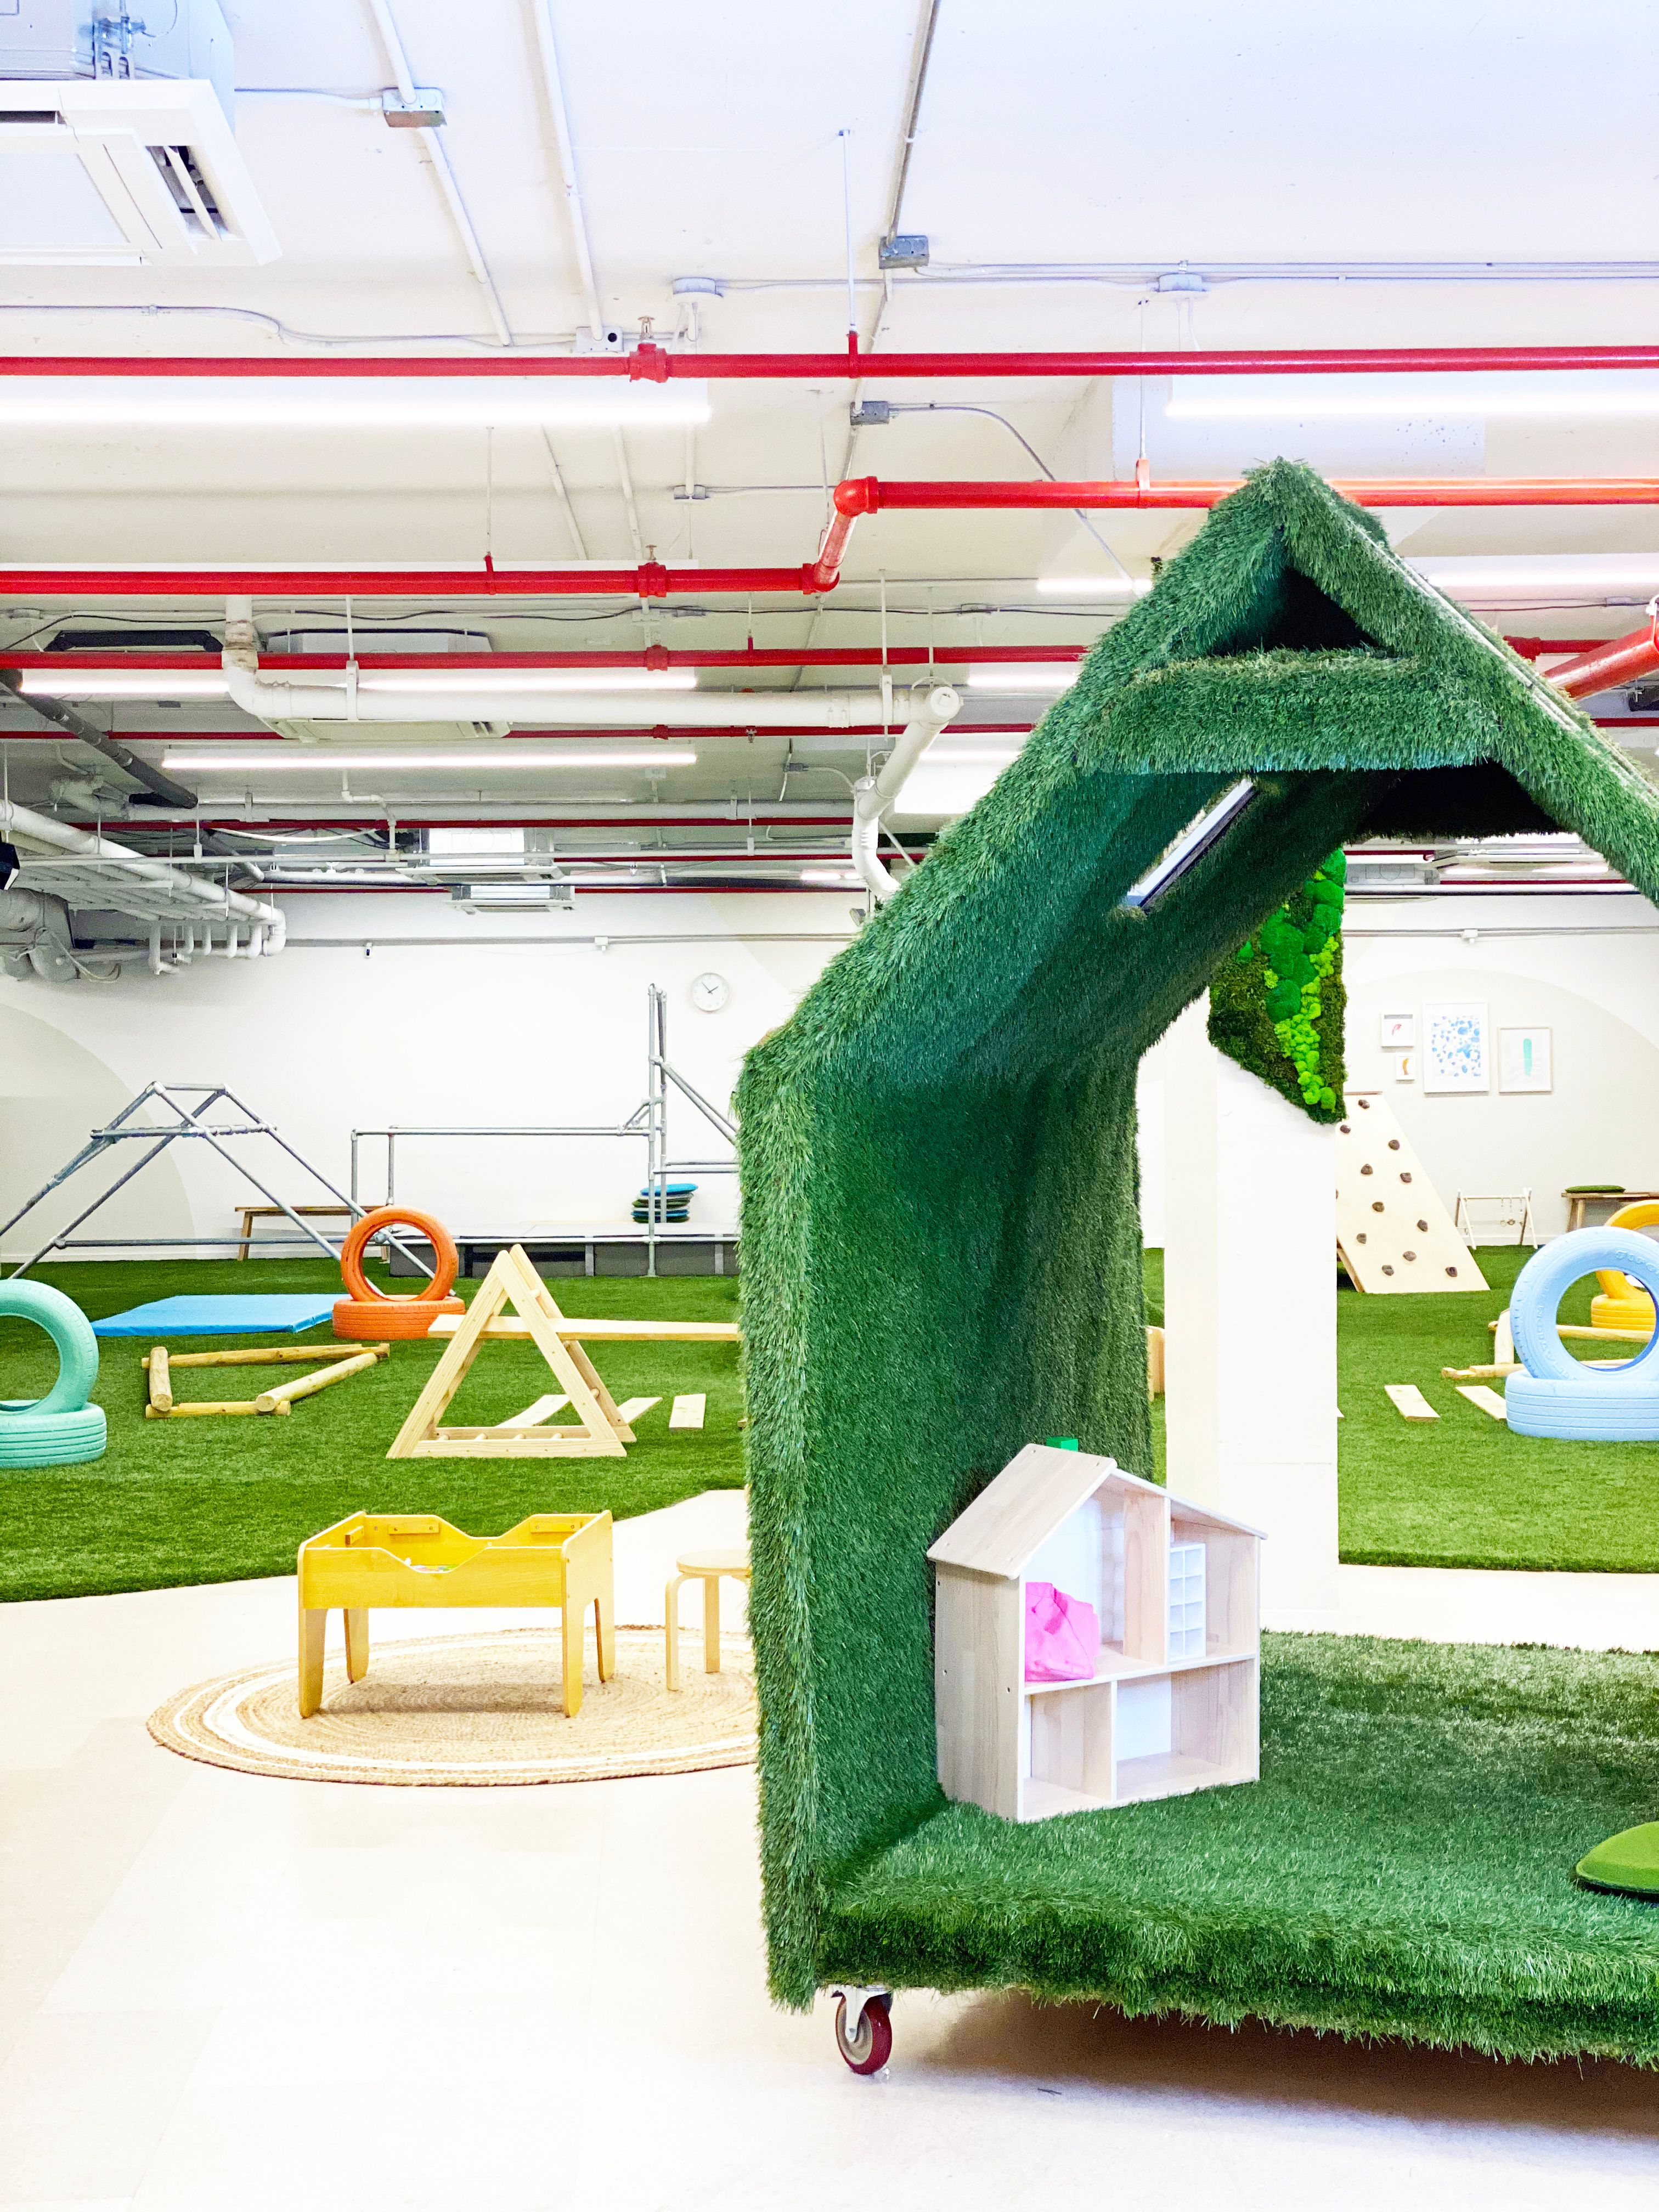 Image from Cocoon: A Home for Families